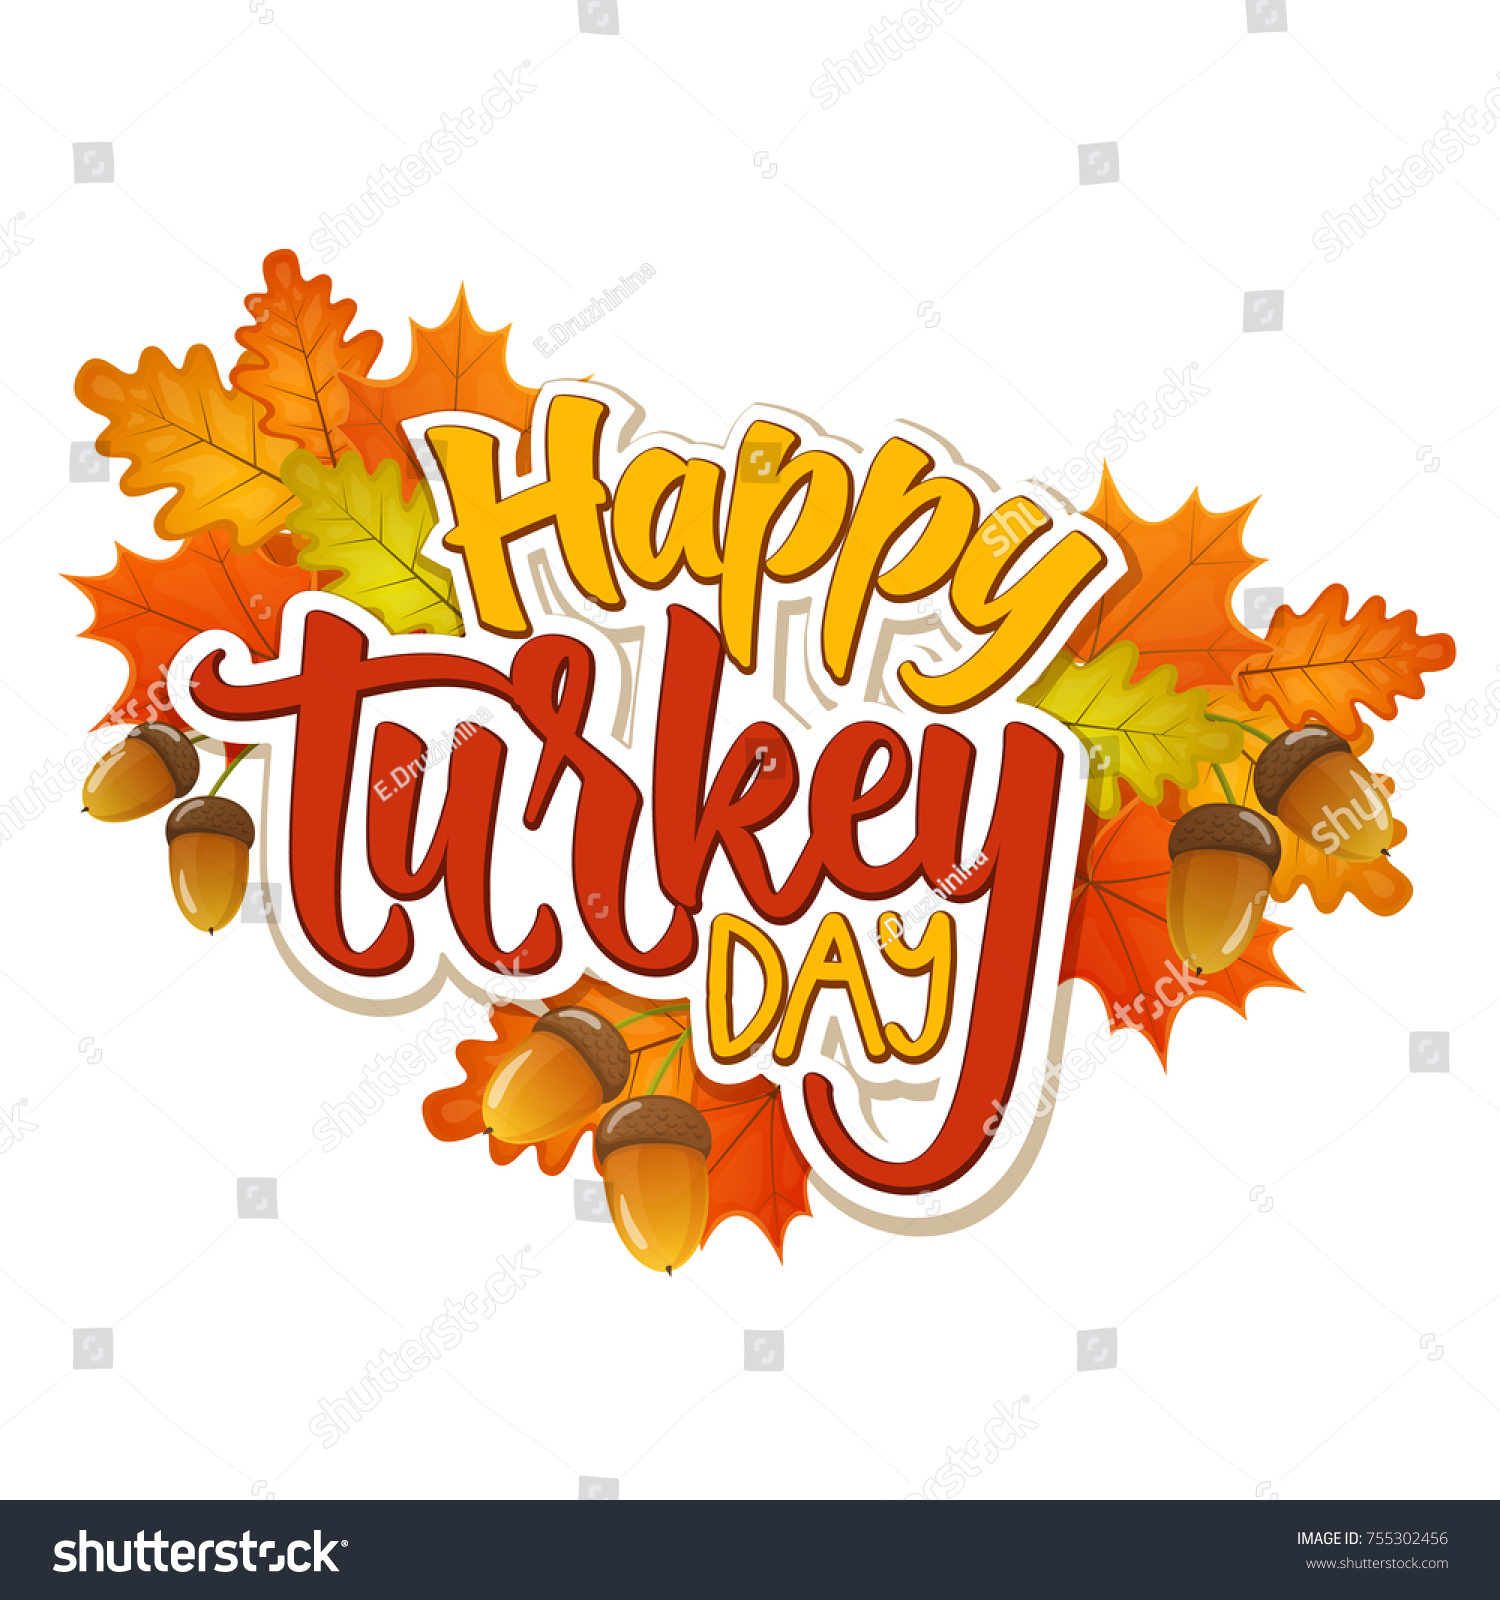 Thanksgiving Day Greetings Autumn Leaves Cartoon Stock Vector